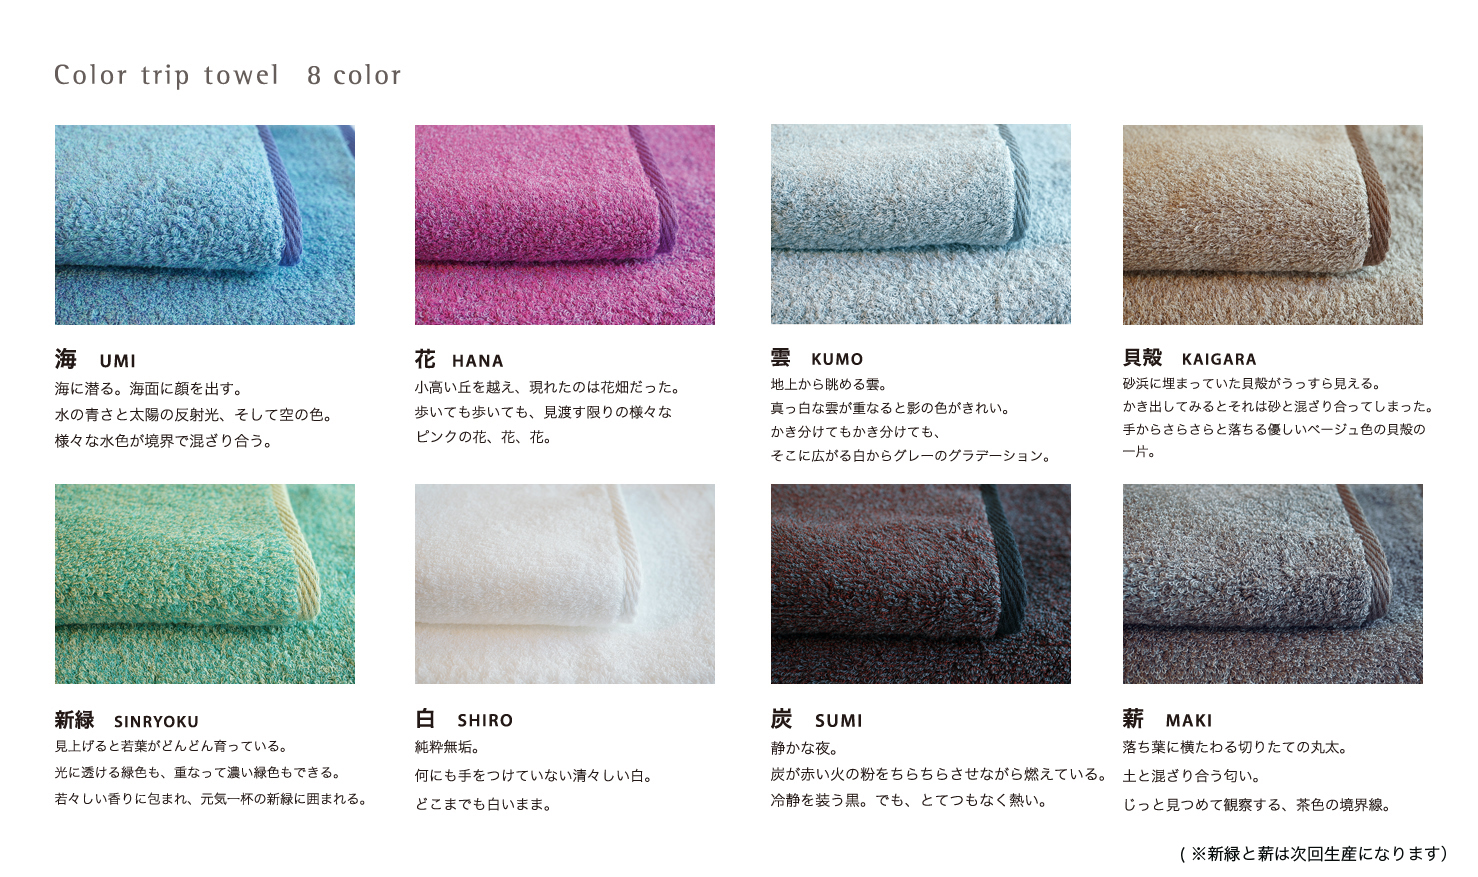 Color trip towel by